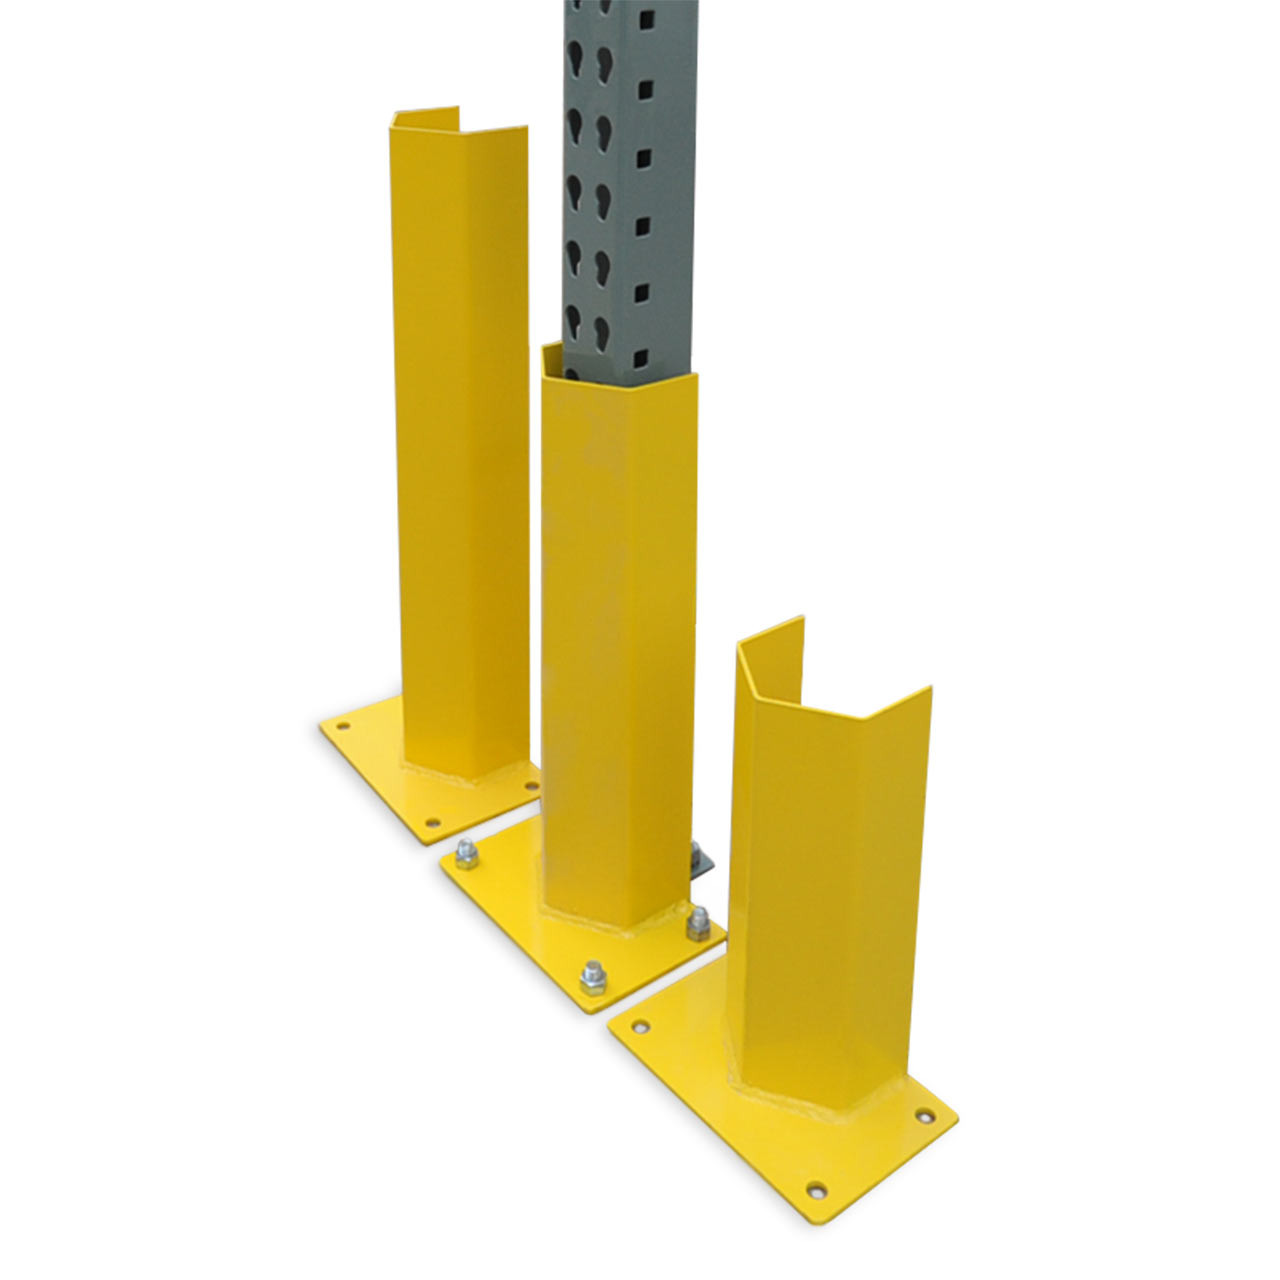 SJF offers these sizes of post protectors